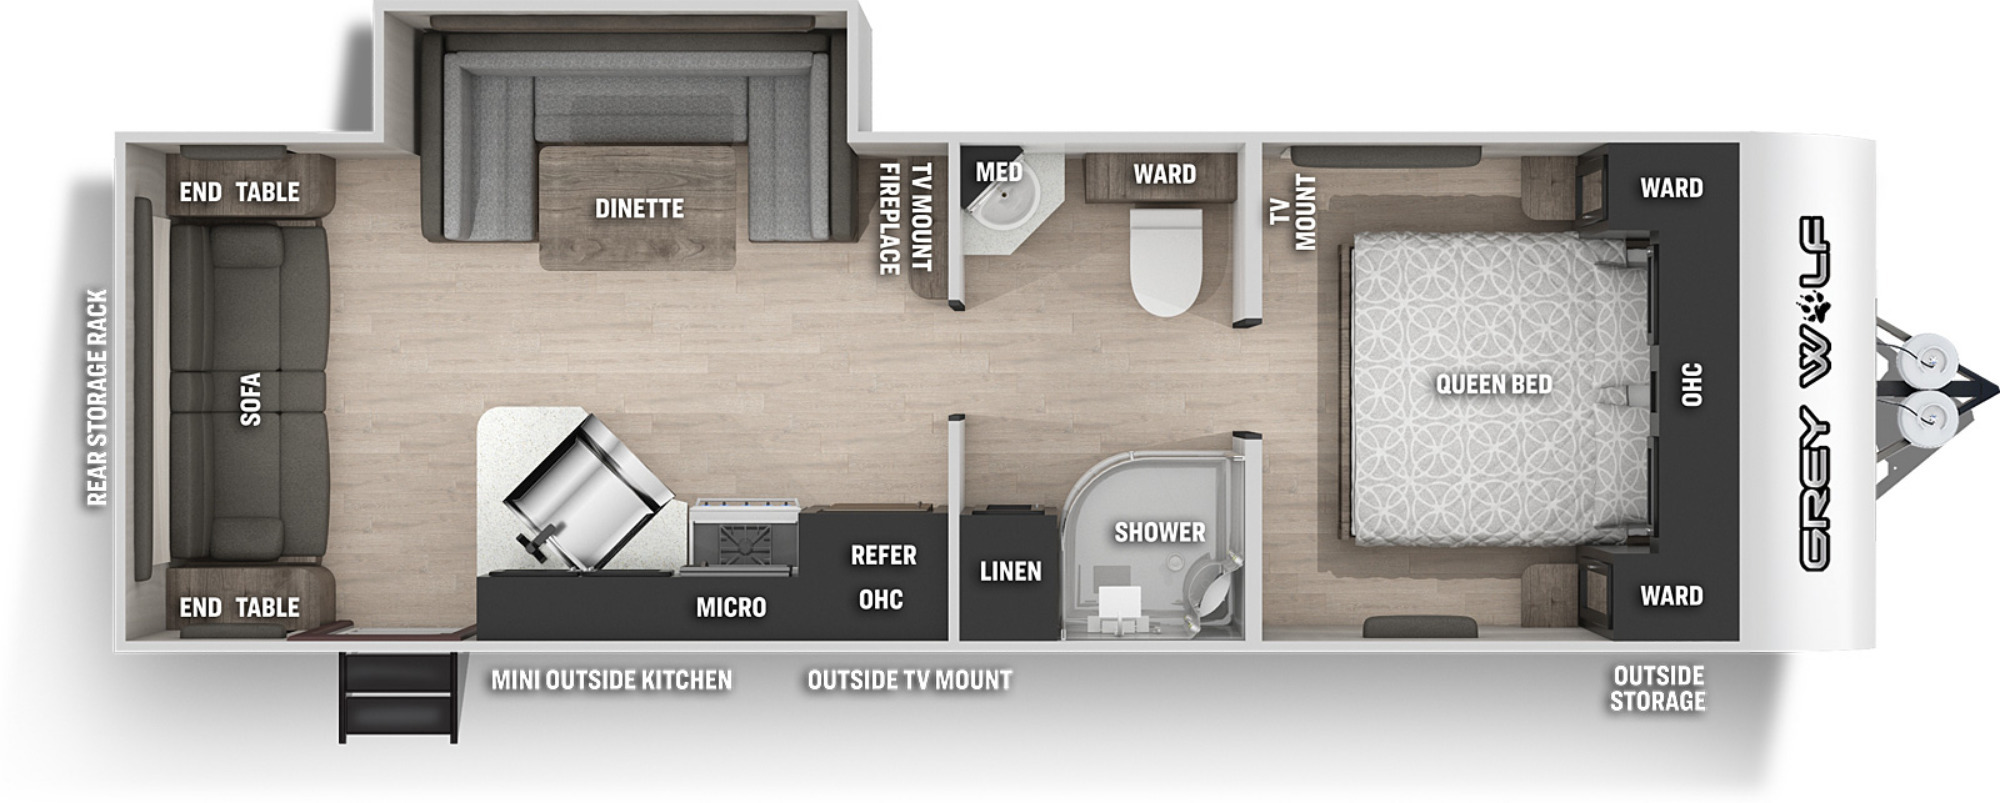 View Floor Plan for 2022 FOREST RIVER GREY WOLF 23MK